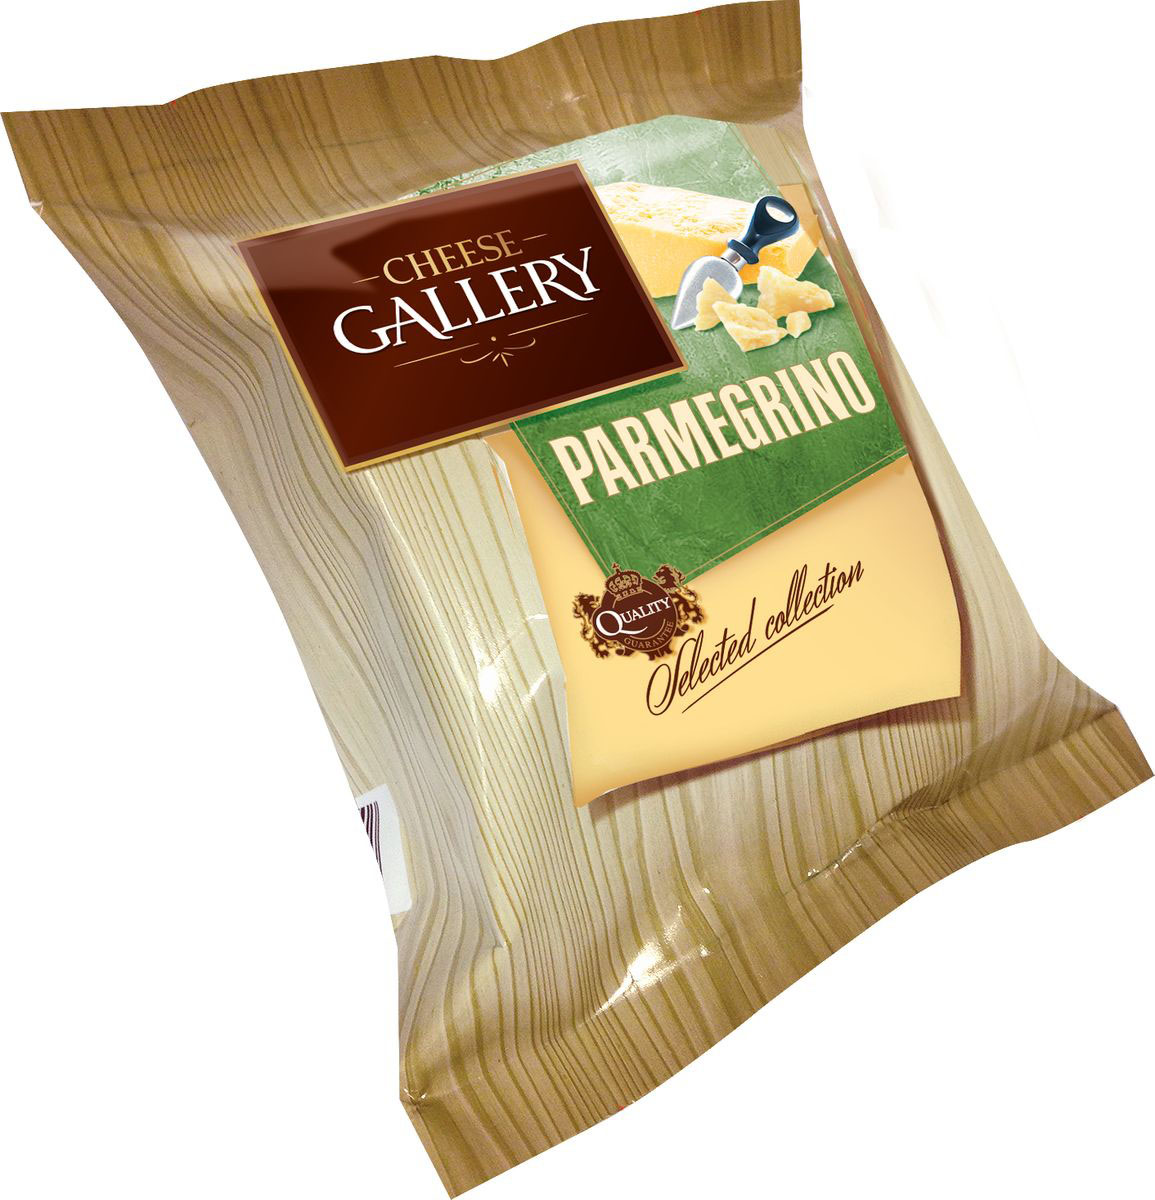 Cheese Gallery Сыр Гойя Parmegrino, 40%, 250 г cheese gallery